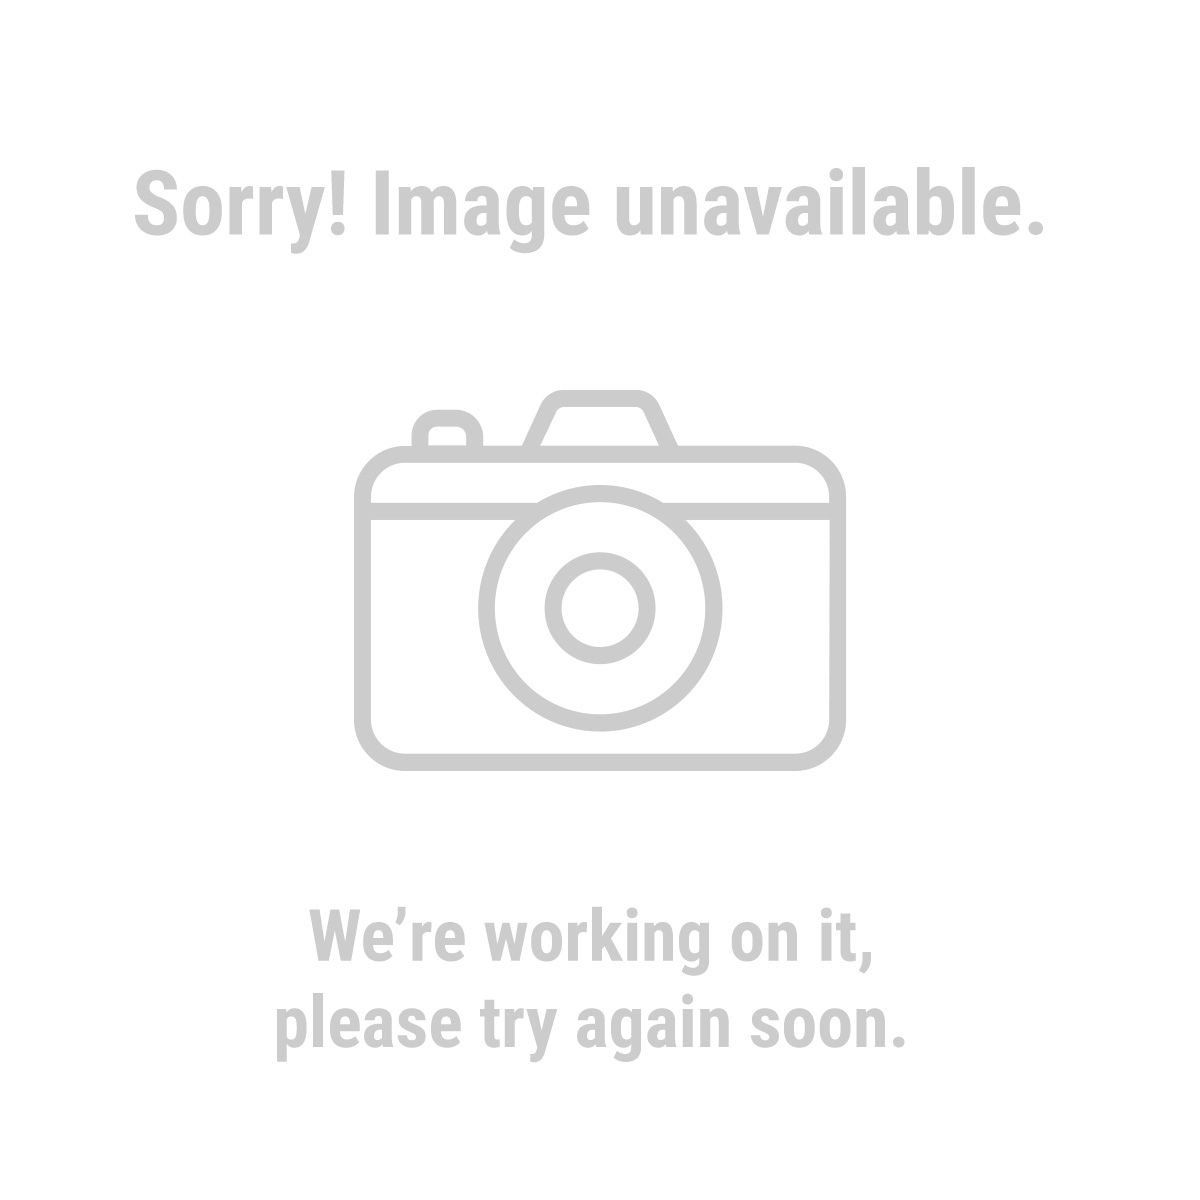 HFT 47474 12 Piece Adjustable Tarpaulin Tie Down Cords